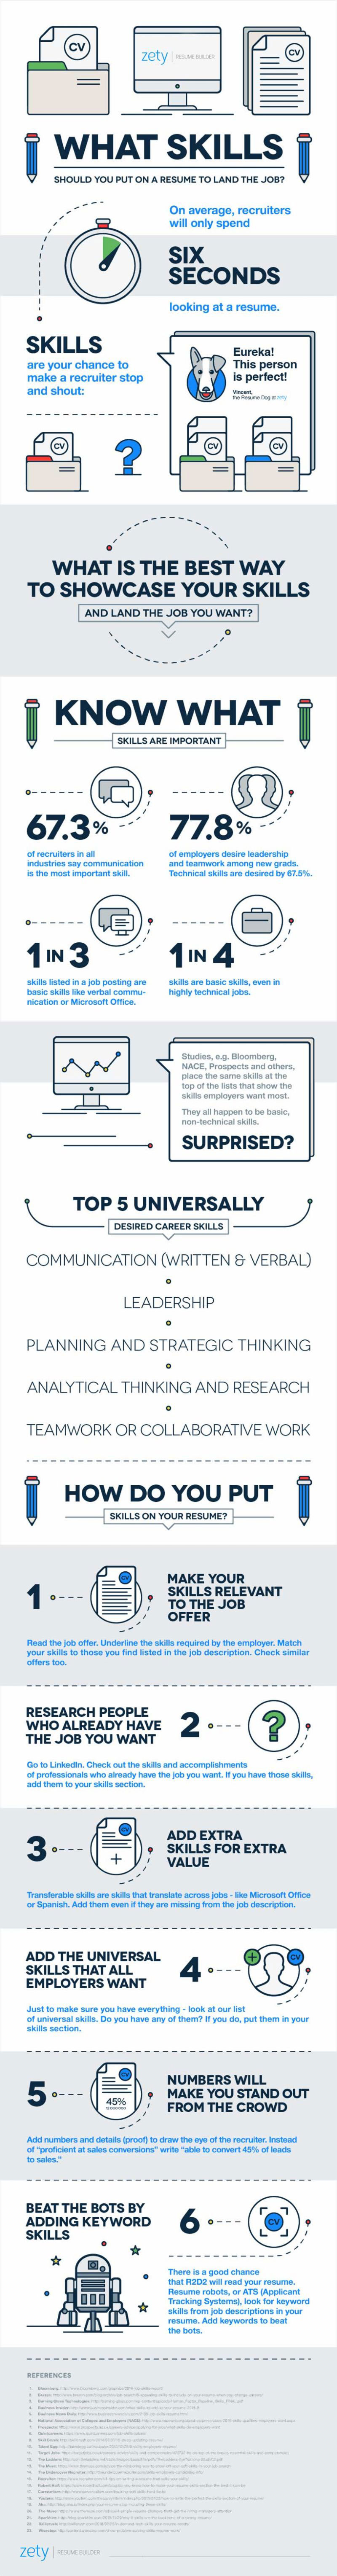 Infographic What Skills Should You Put On A Resume To Land The